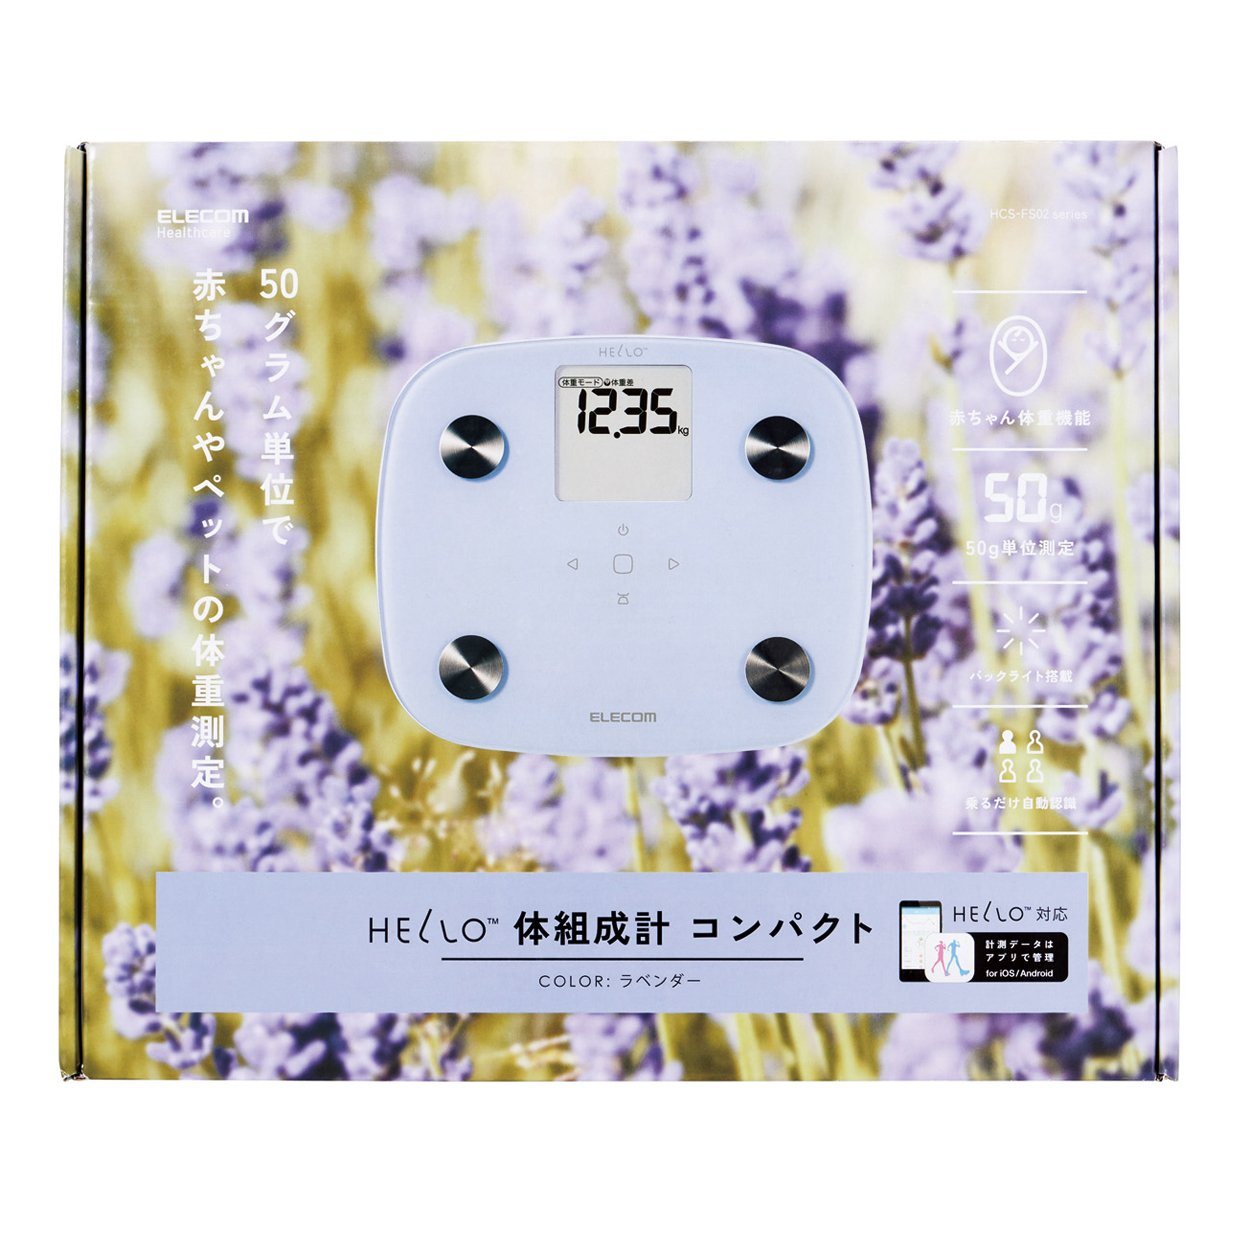 ELECOM WEIGHT AND BODY COMPOSITION ANALYZER ''HELLO Organization Composition'' HCS-FS02WH (WHITE)【Japan Domestic genuine products】